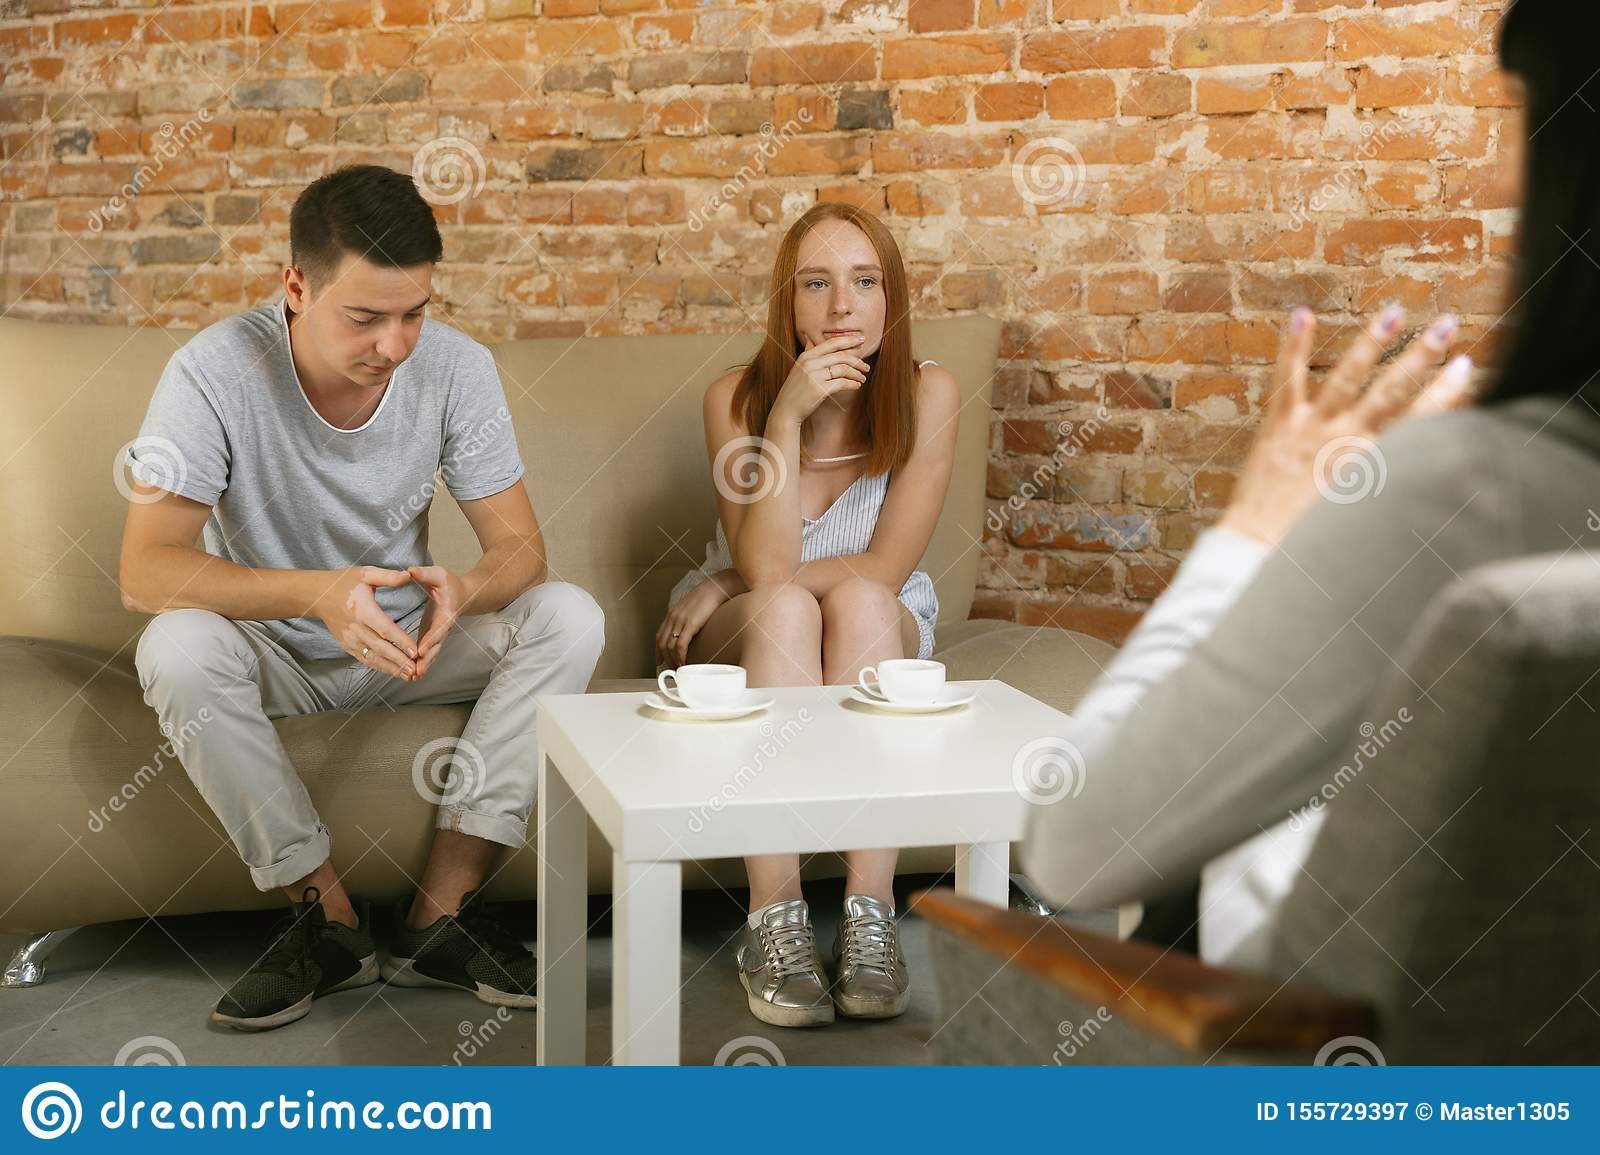 Marriage Counseling Images